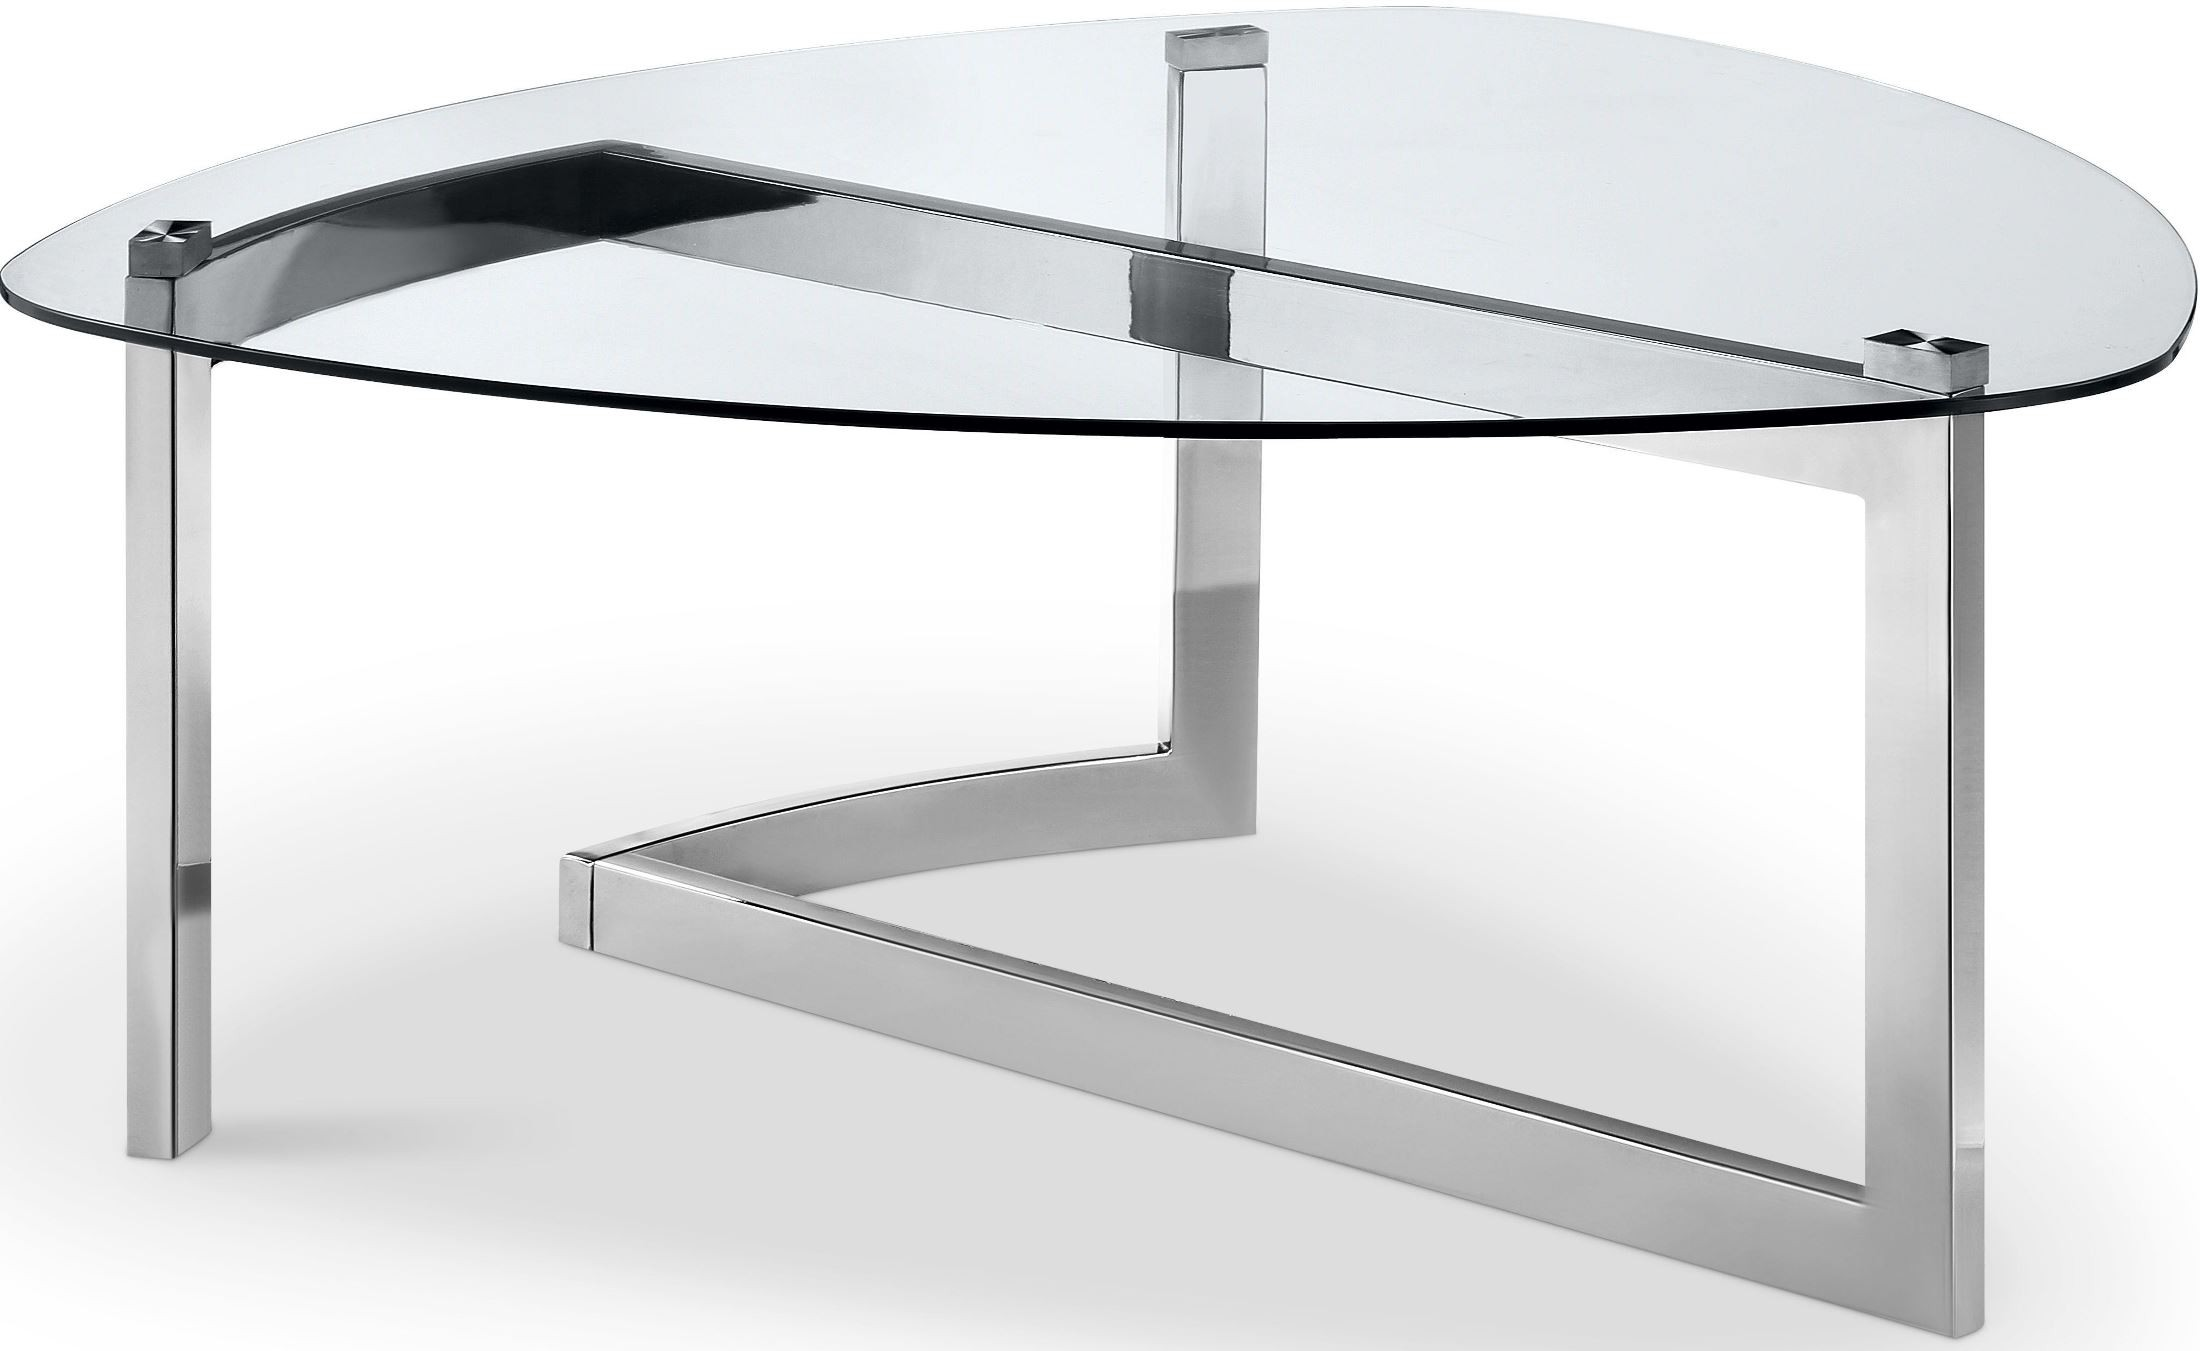 Aries Chrome Shaped Cocktail Table From Magnussen Home   Coleman Furniture